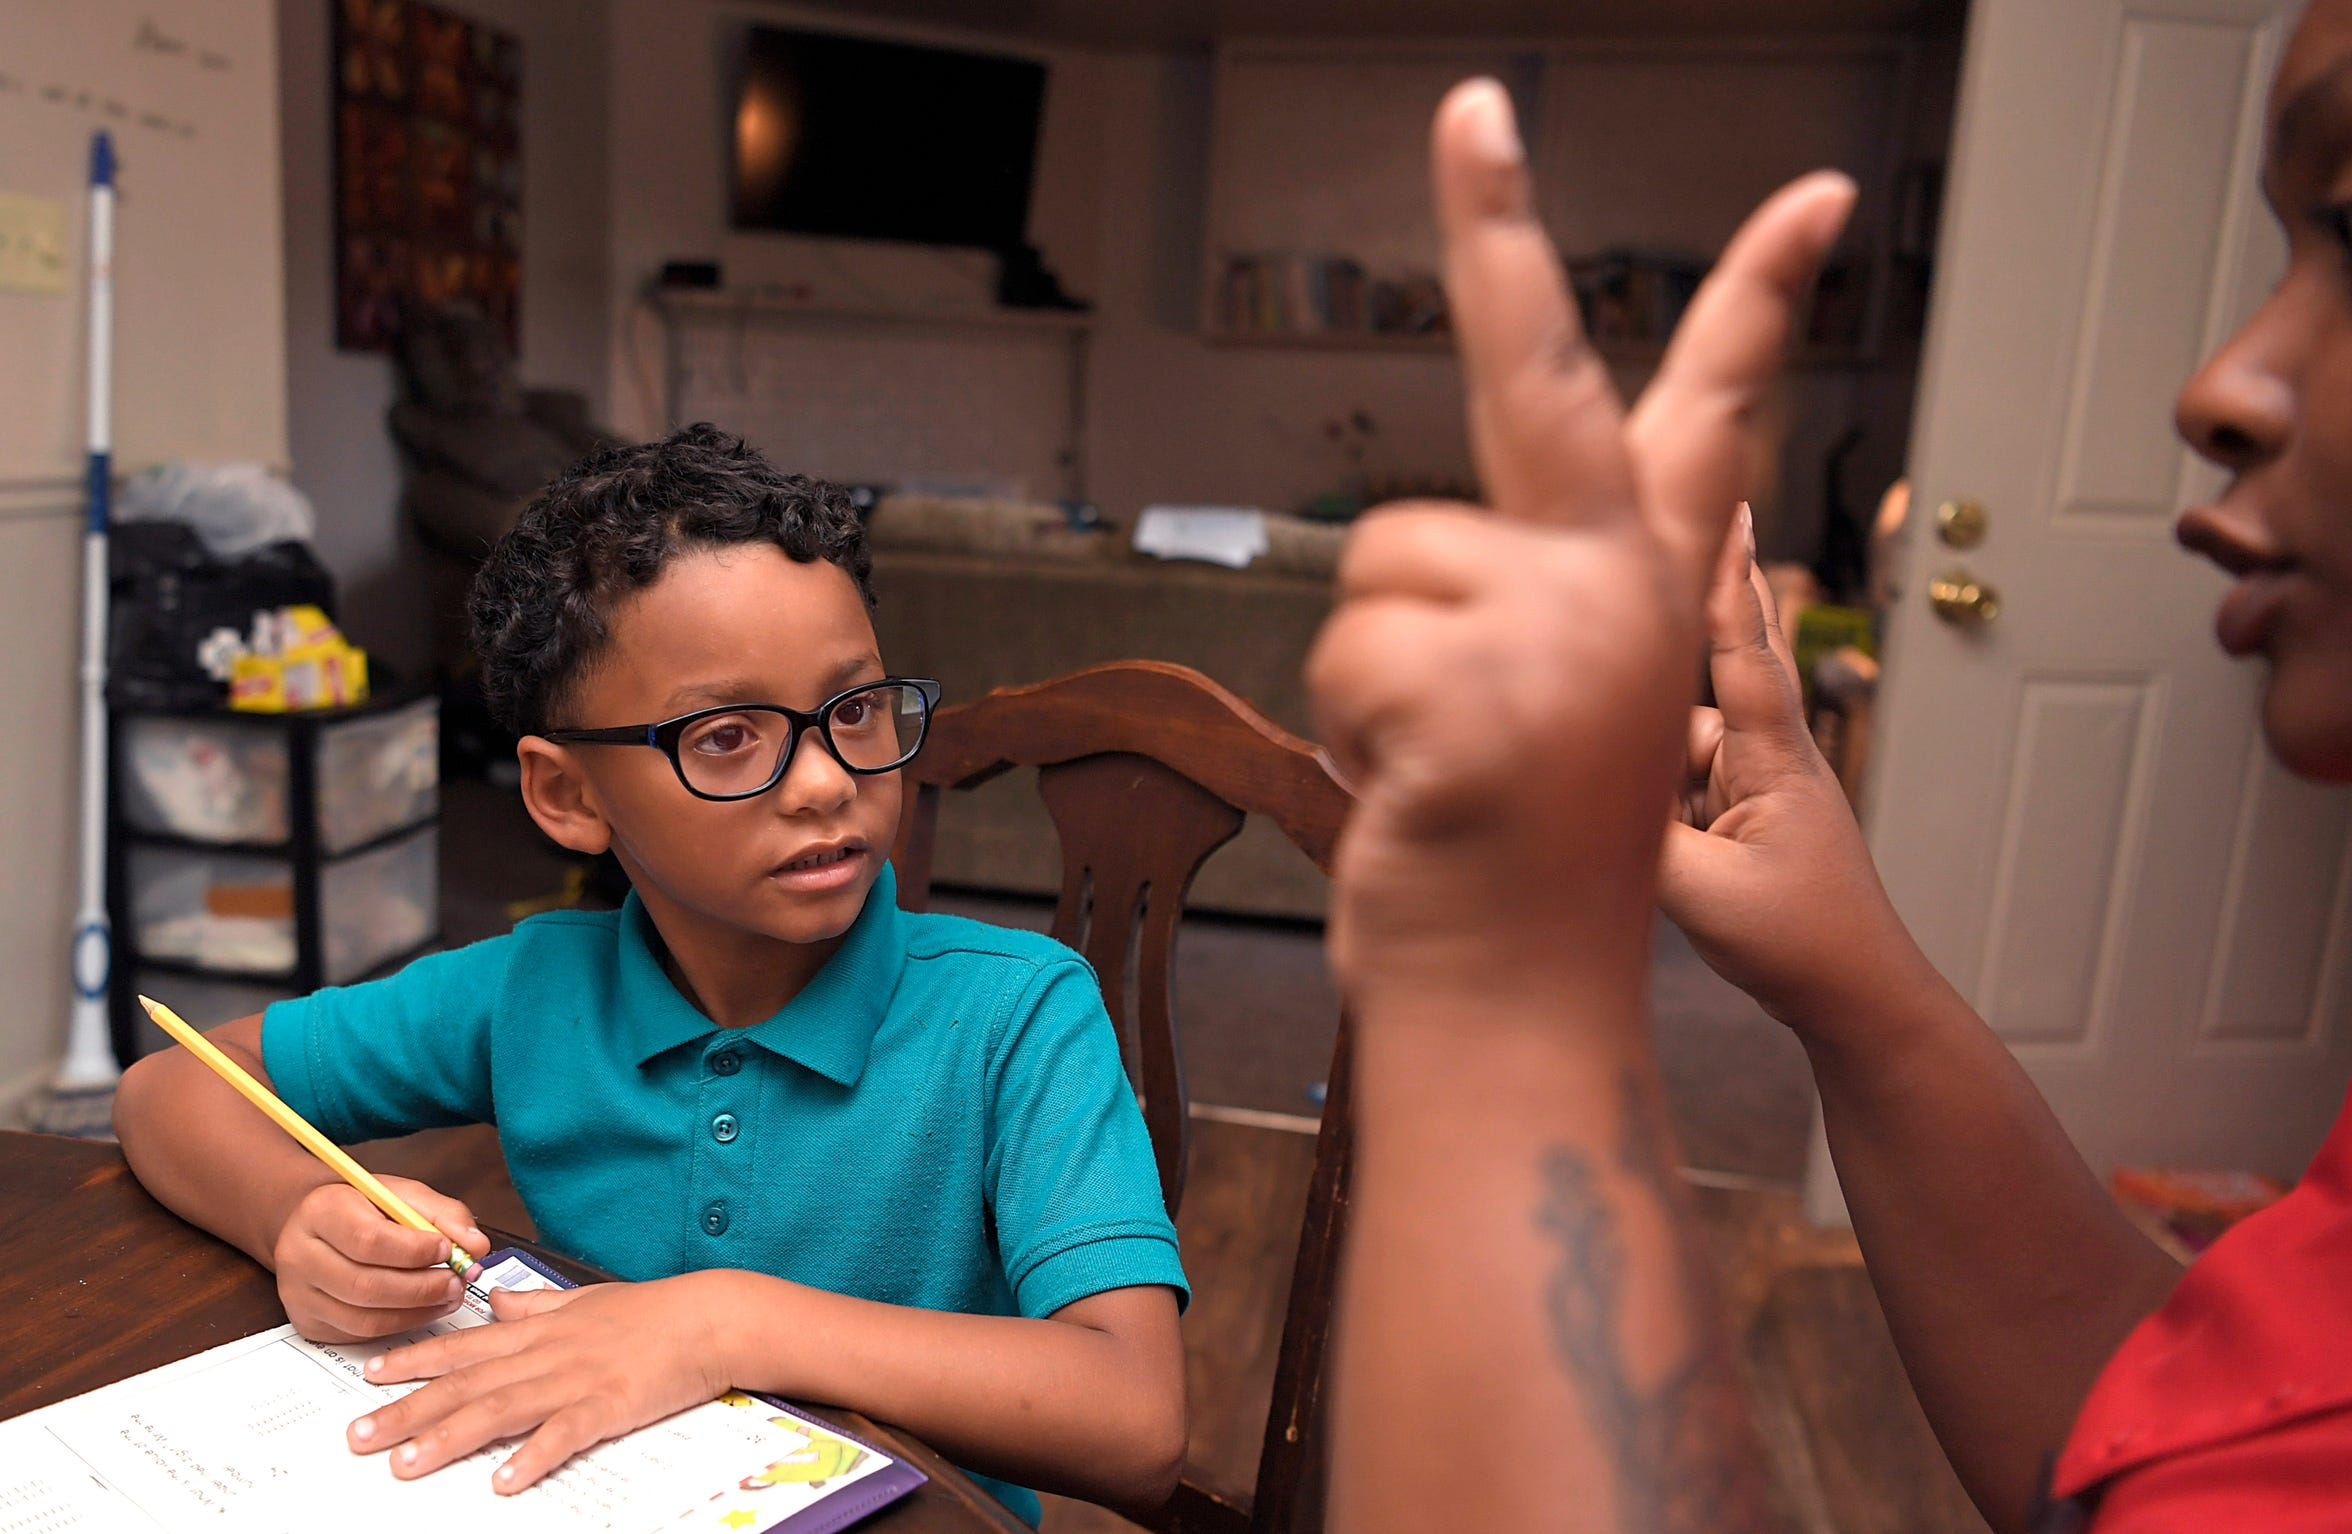 Shaunqueen Leatherman helps her son Johnathan do his homework at their North Nashville home Aug. 16, 2018.